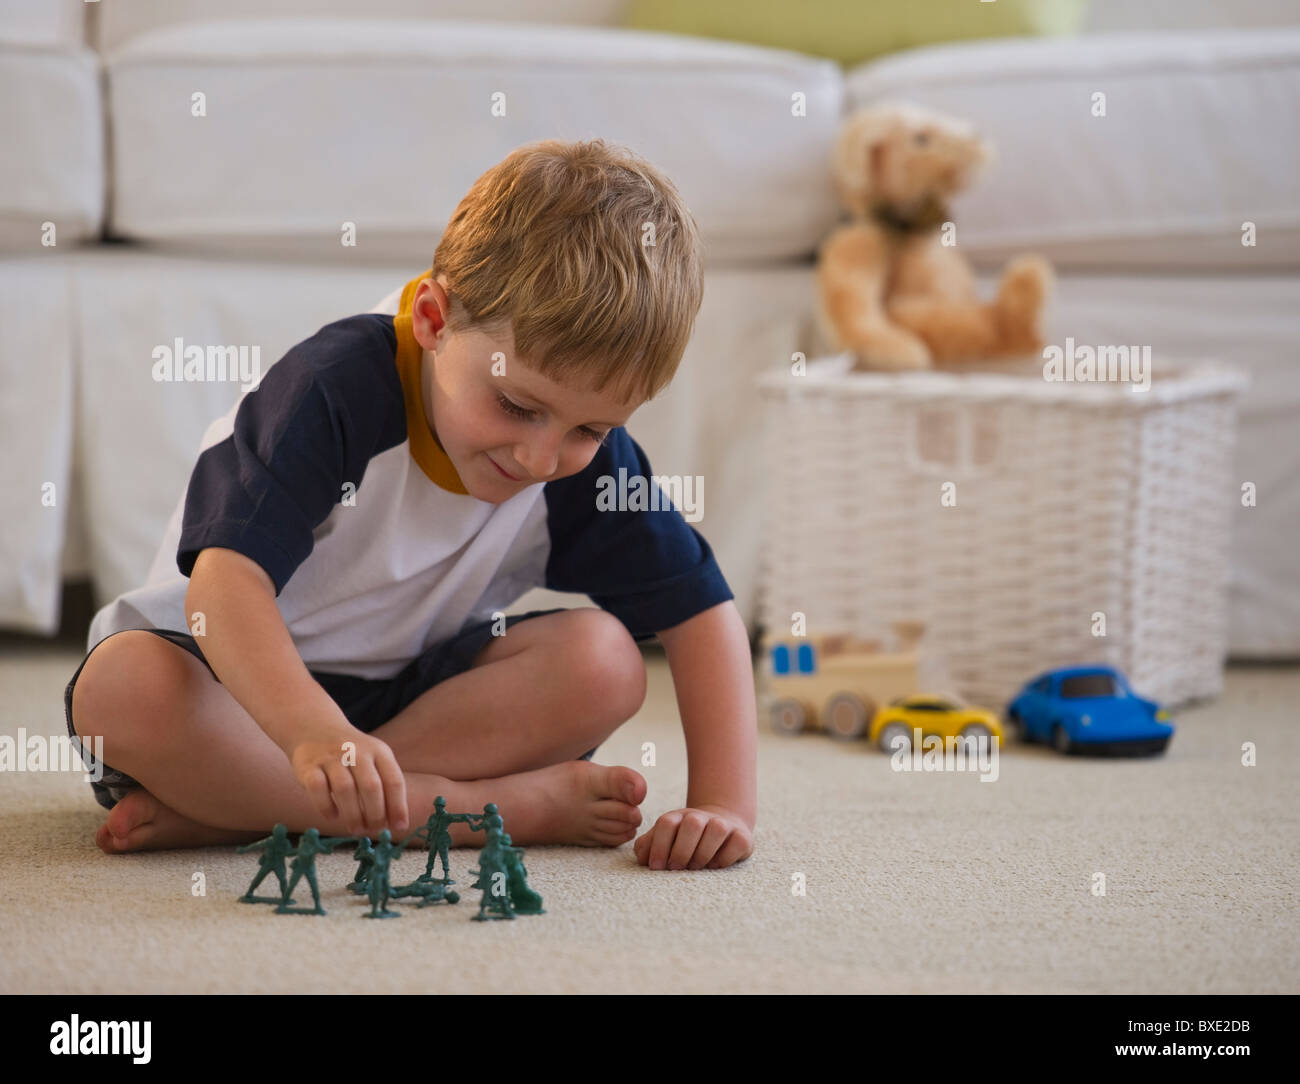 Young Boy Playing With Toy Soldiers Stock Photo 33500695